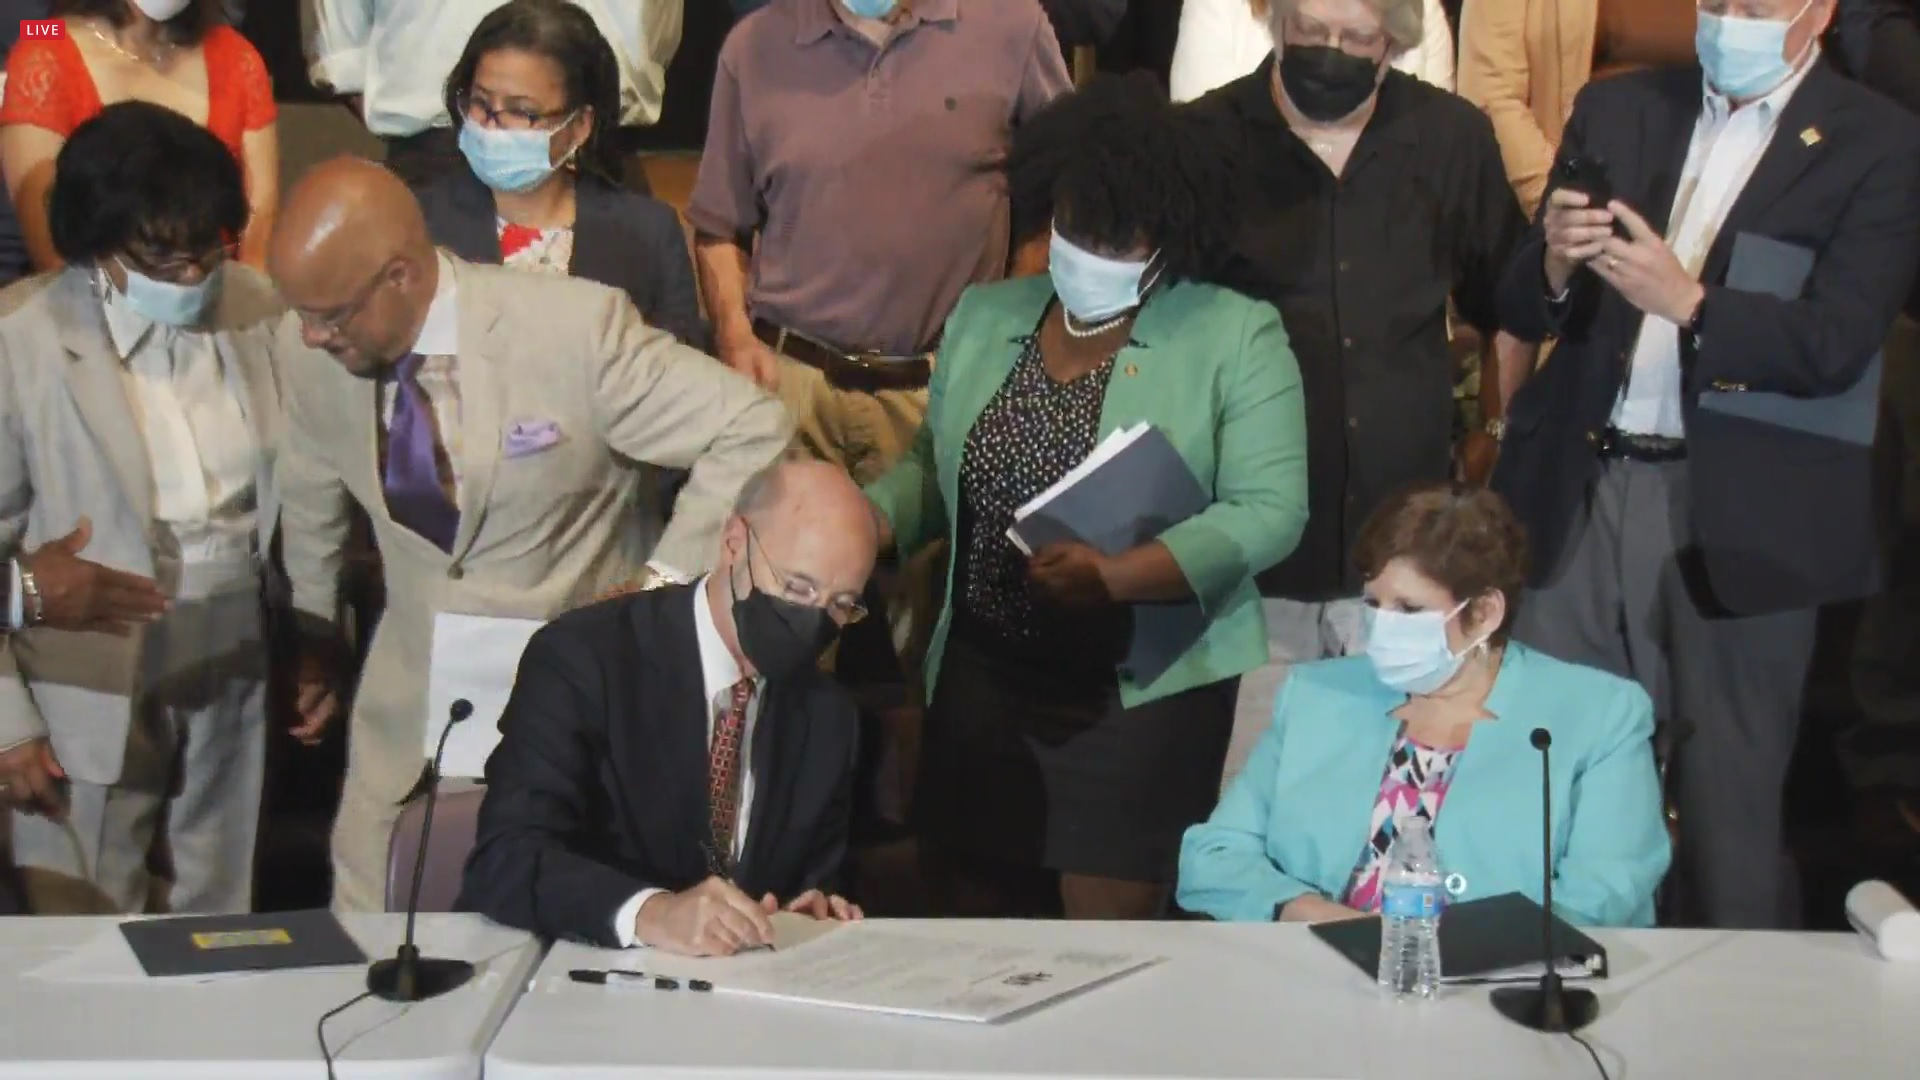 Gov. Tom Wolf signs a letter calling on state Republicans to advance a $15 minimum wage bill such as the one sponsored by state Sen. Christine Tartaglione, D-Philadelphia, who is looking on at right. (Source: Pa.gov)